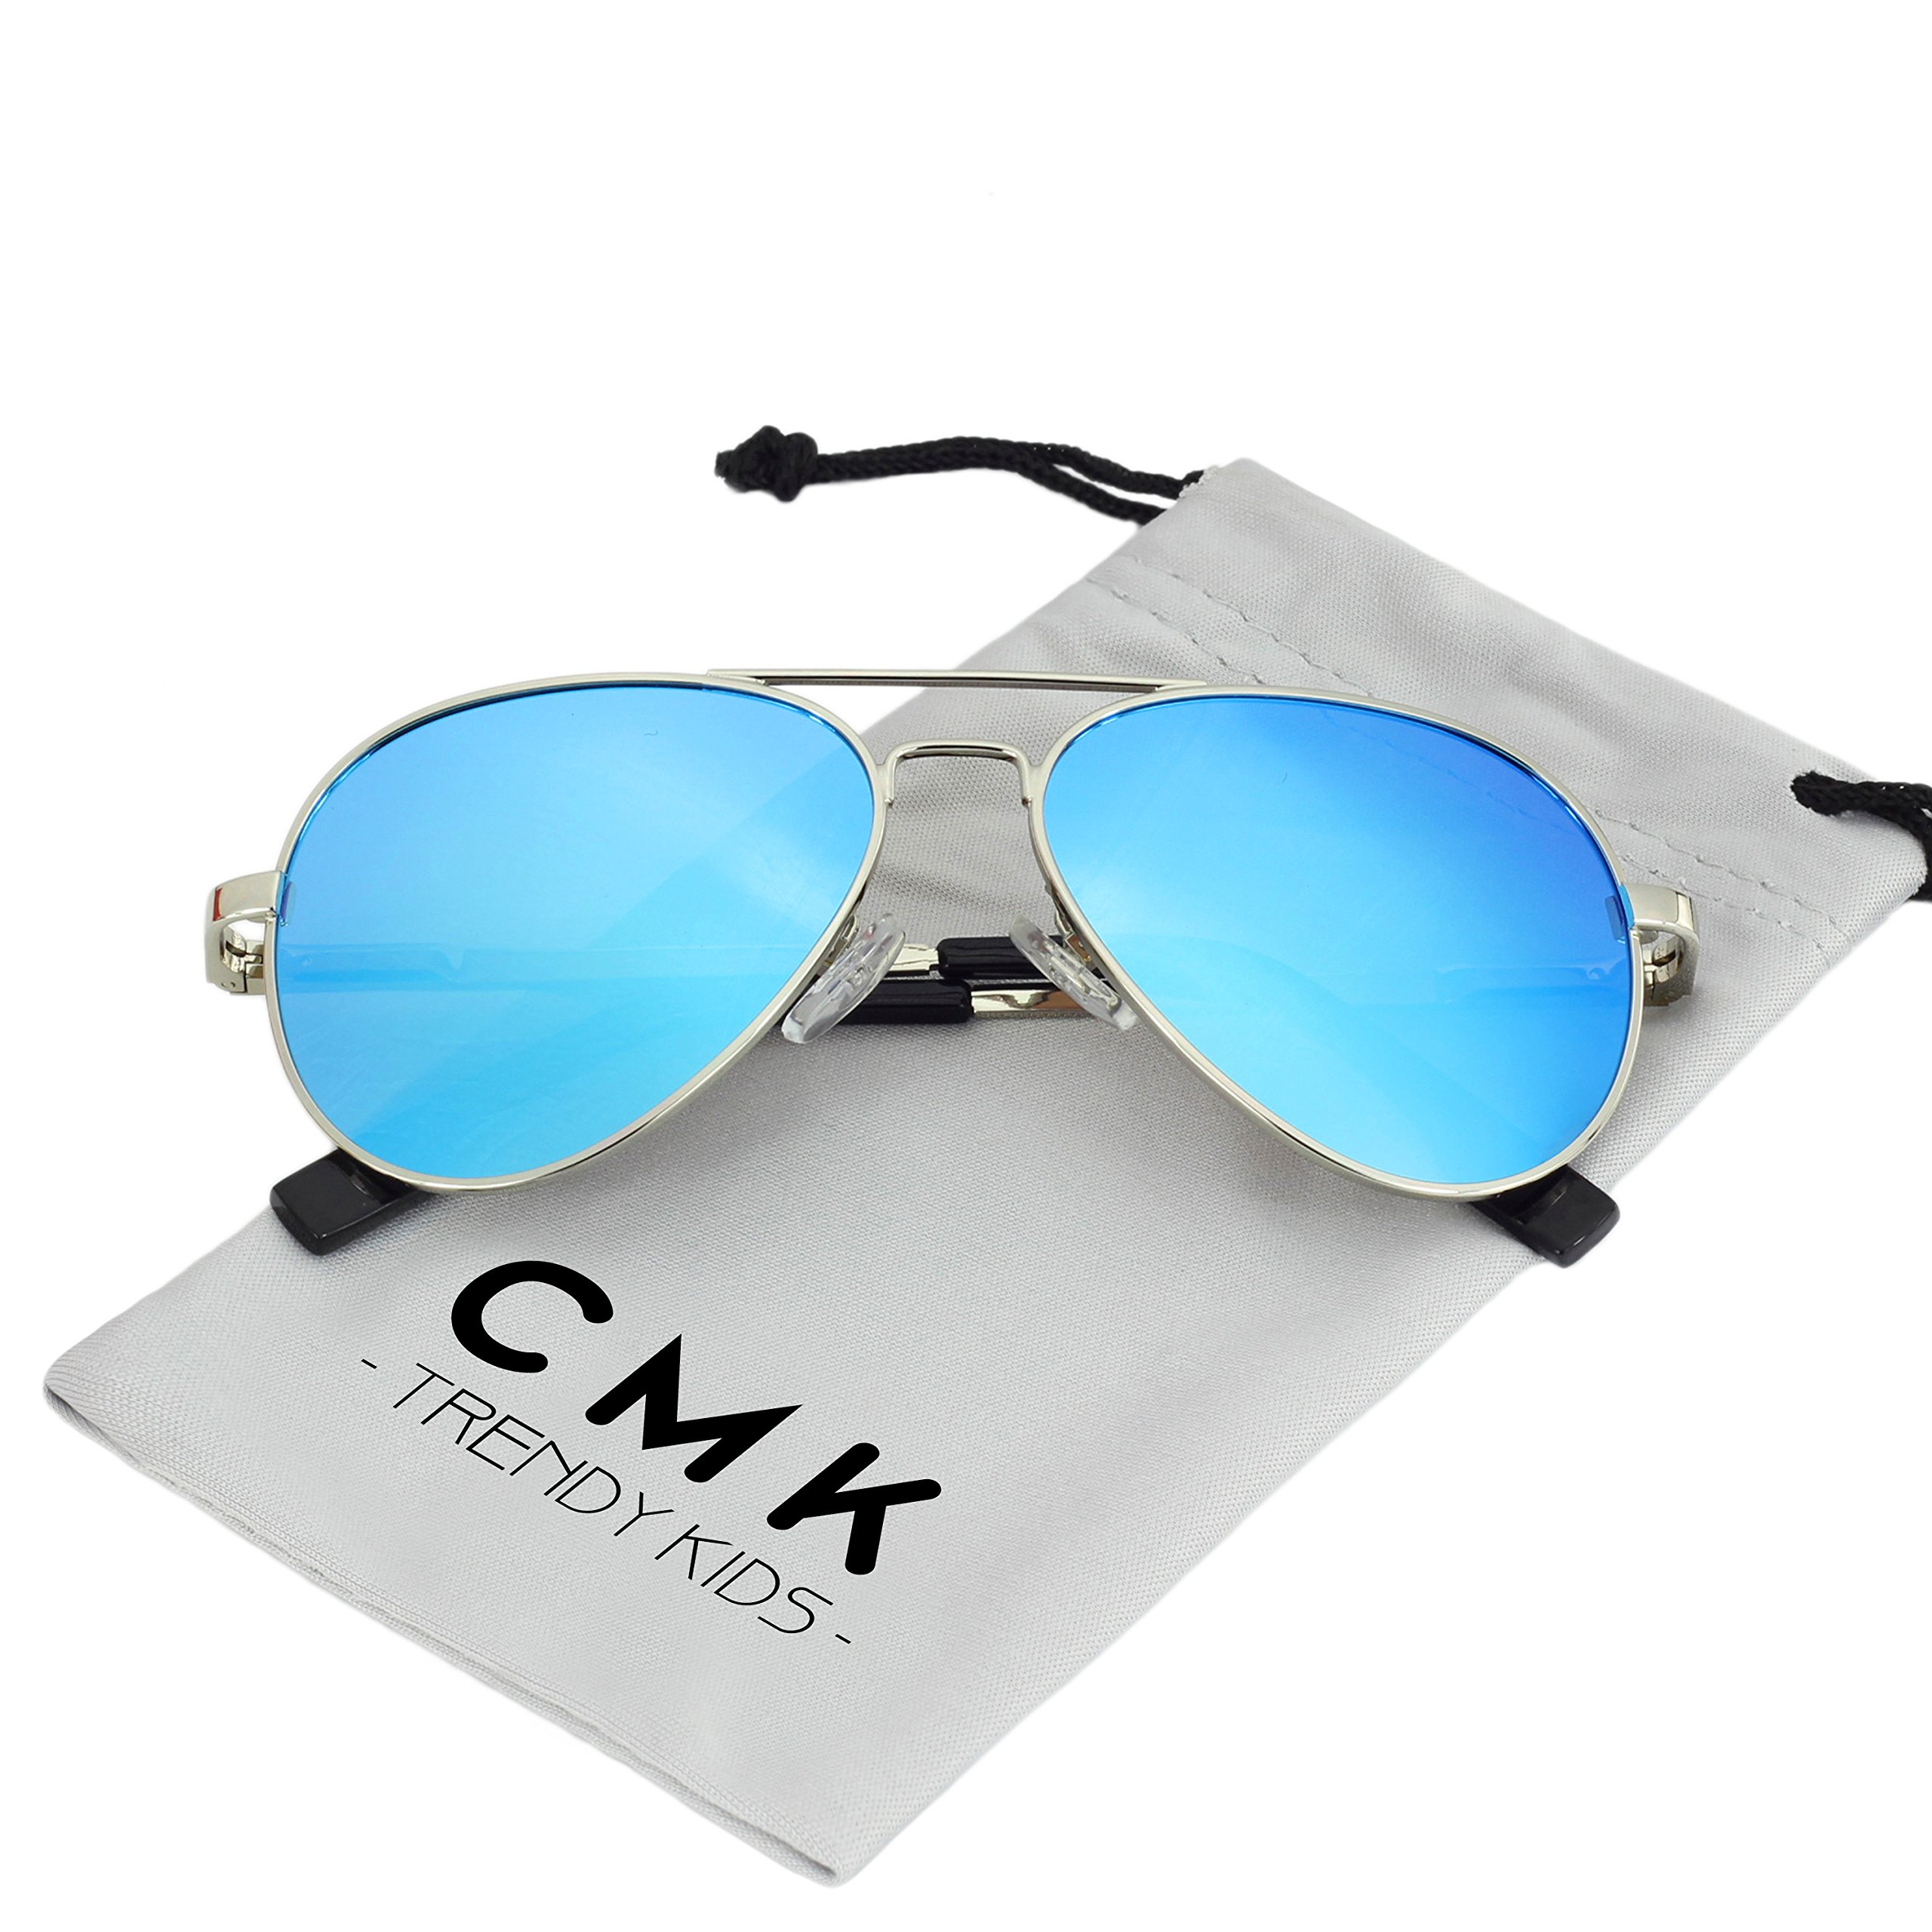 CMK Trendy Kids Kids Small Polarized Aviator Sunglasses for Boys and Girls or Small Face Adults, 52mm (Blue, 52)